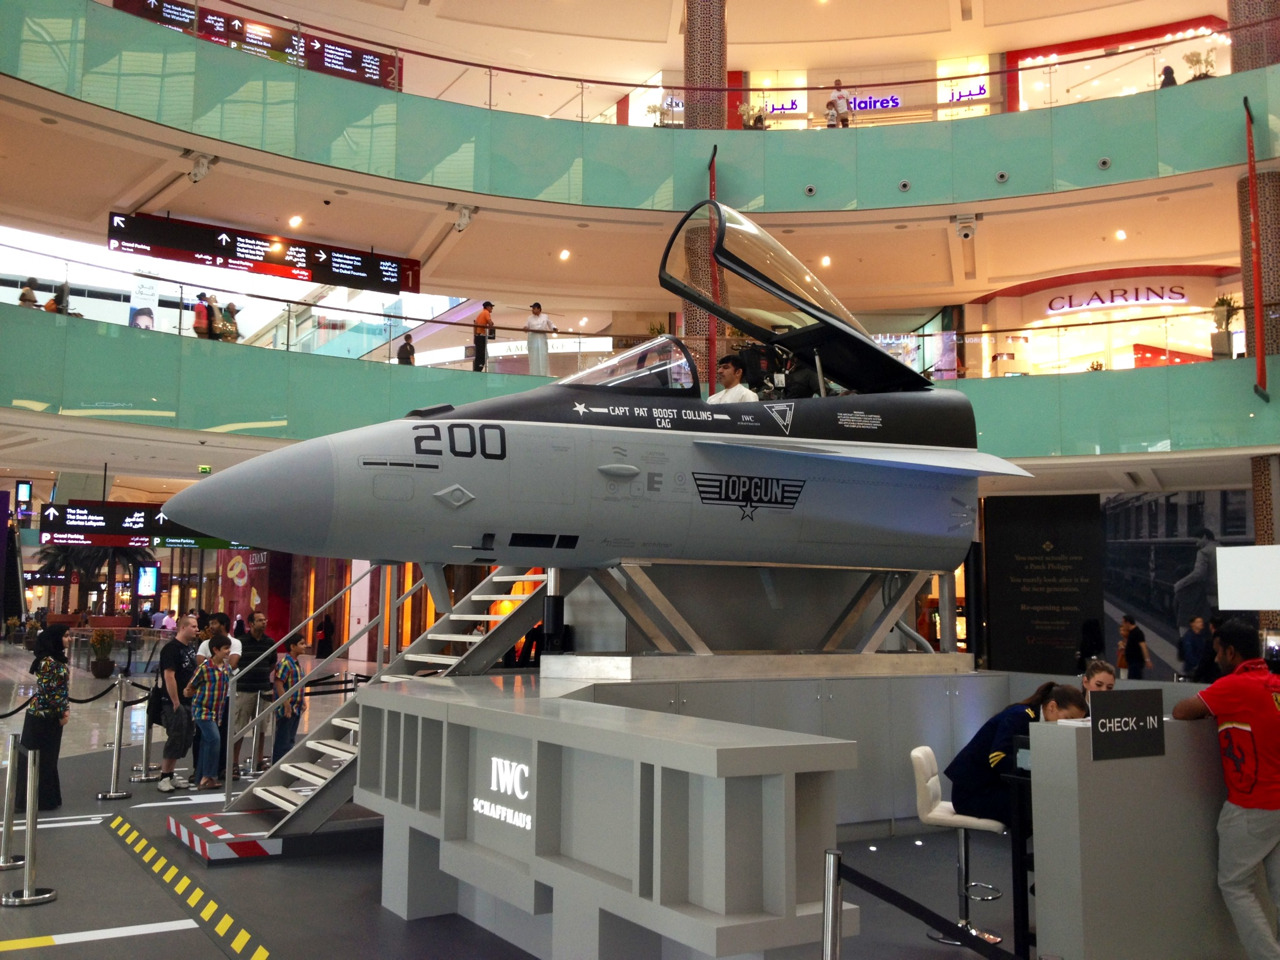 Now THAT'S an activation! Full-on fighter jet simulator in Dubai Mall. For a luxury watch brand, of course.